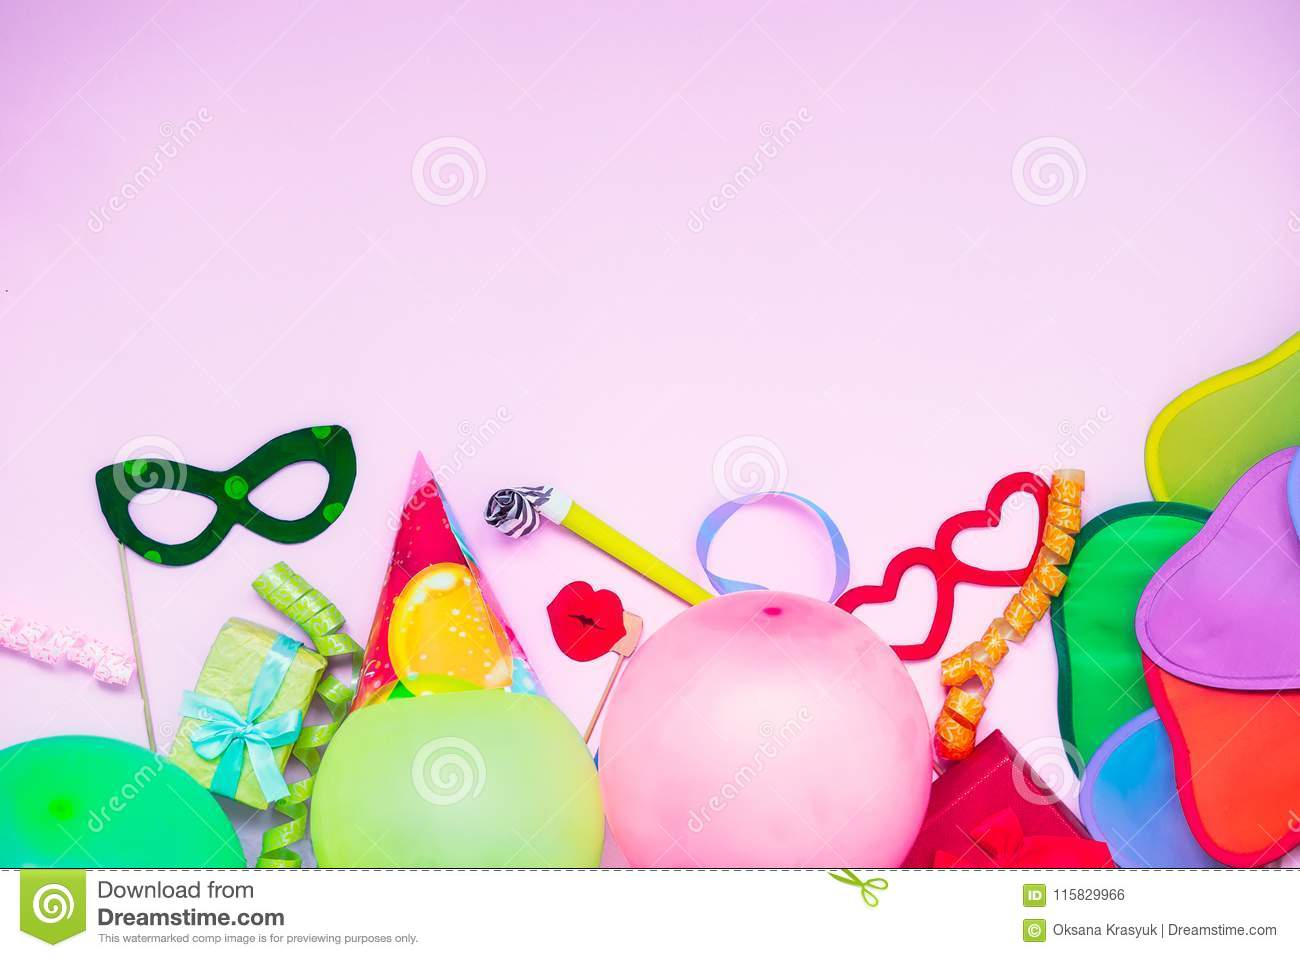 Light pink Festive background with party tools and decoration - baloons, funny carnival masks, festive tinsel. Happy birthday gree